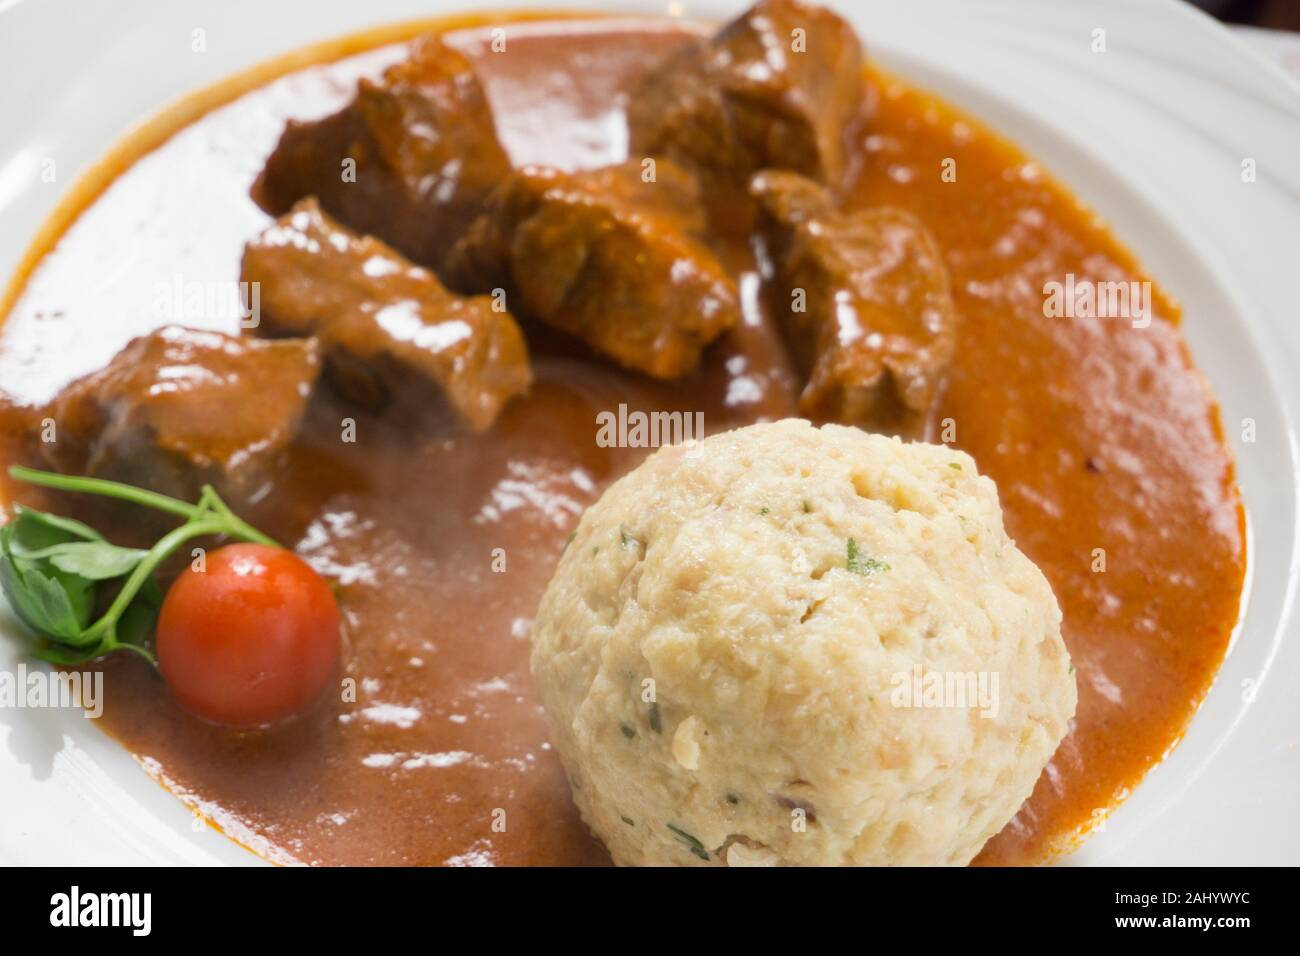 Hungary Goulash Dumpling High Resolution Stock Photography And Images Alamy